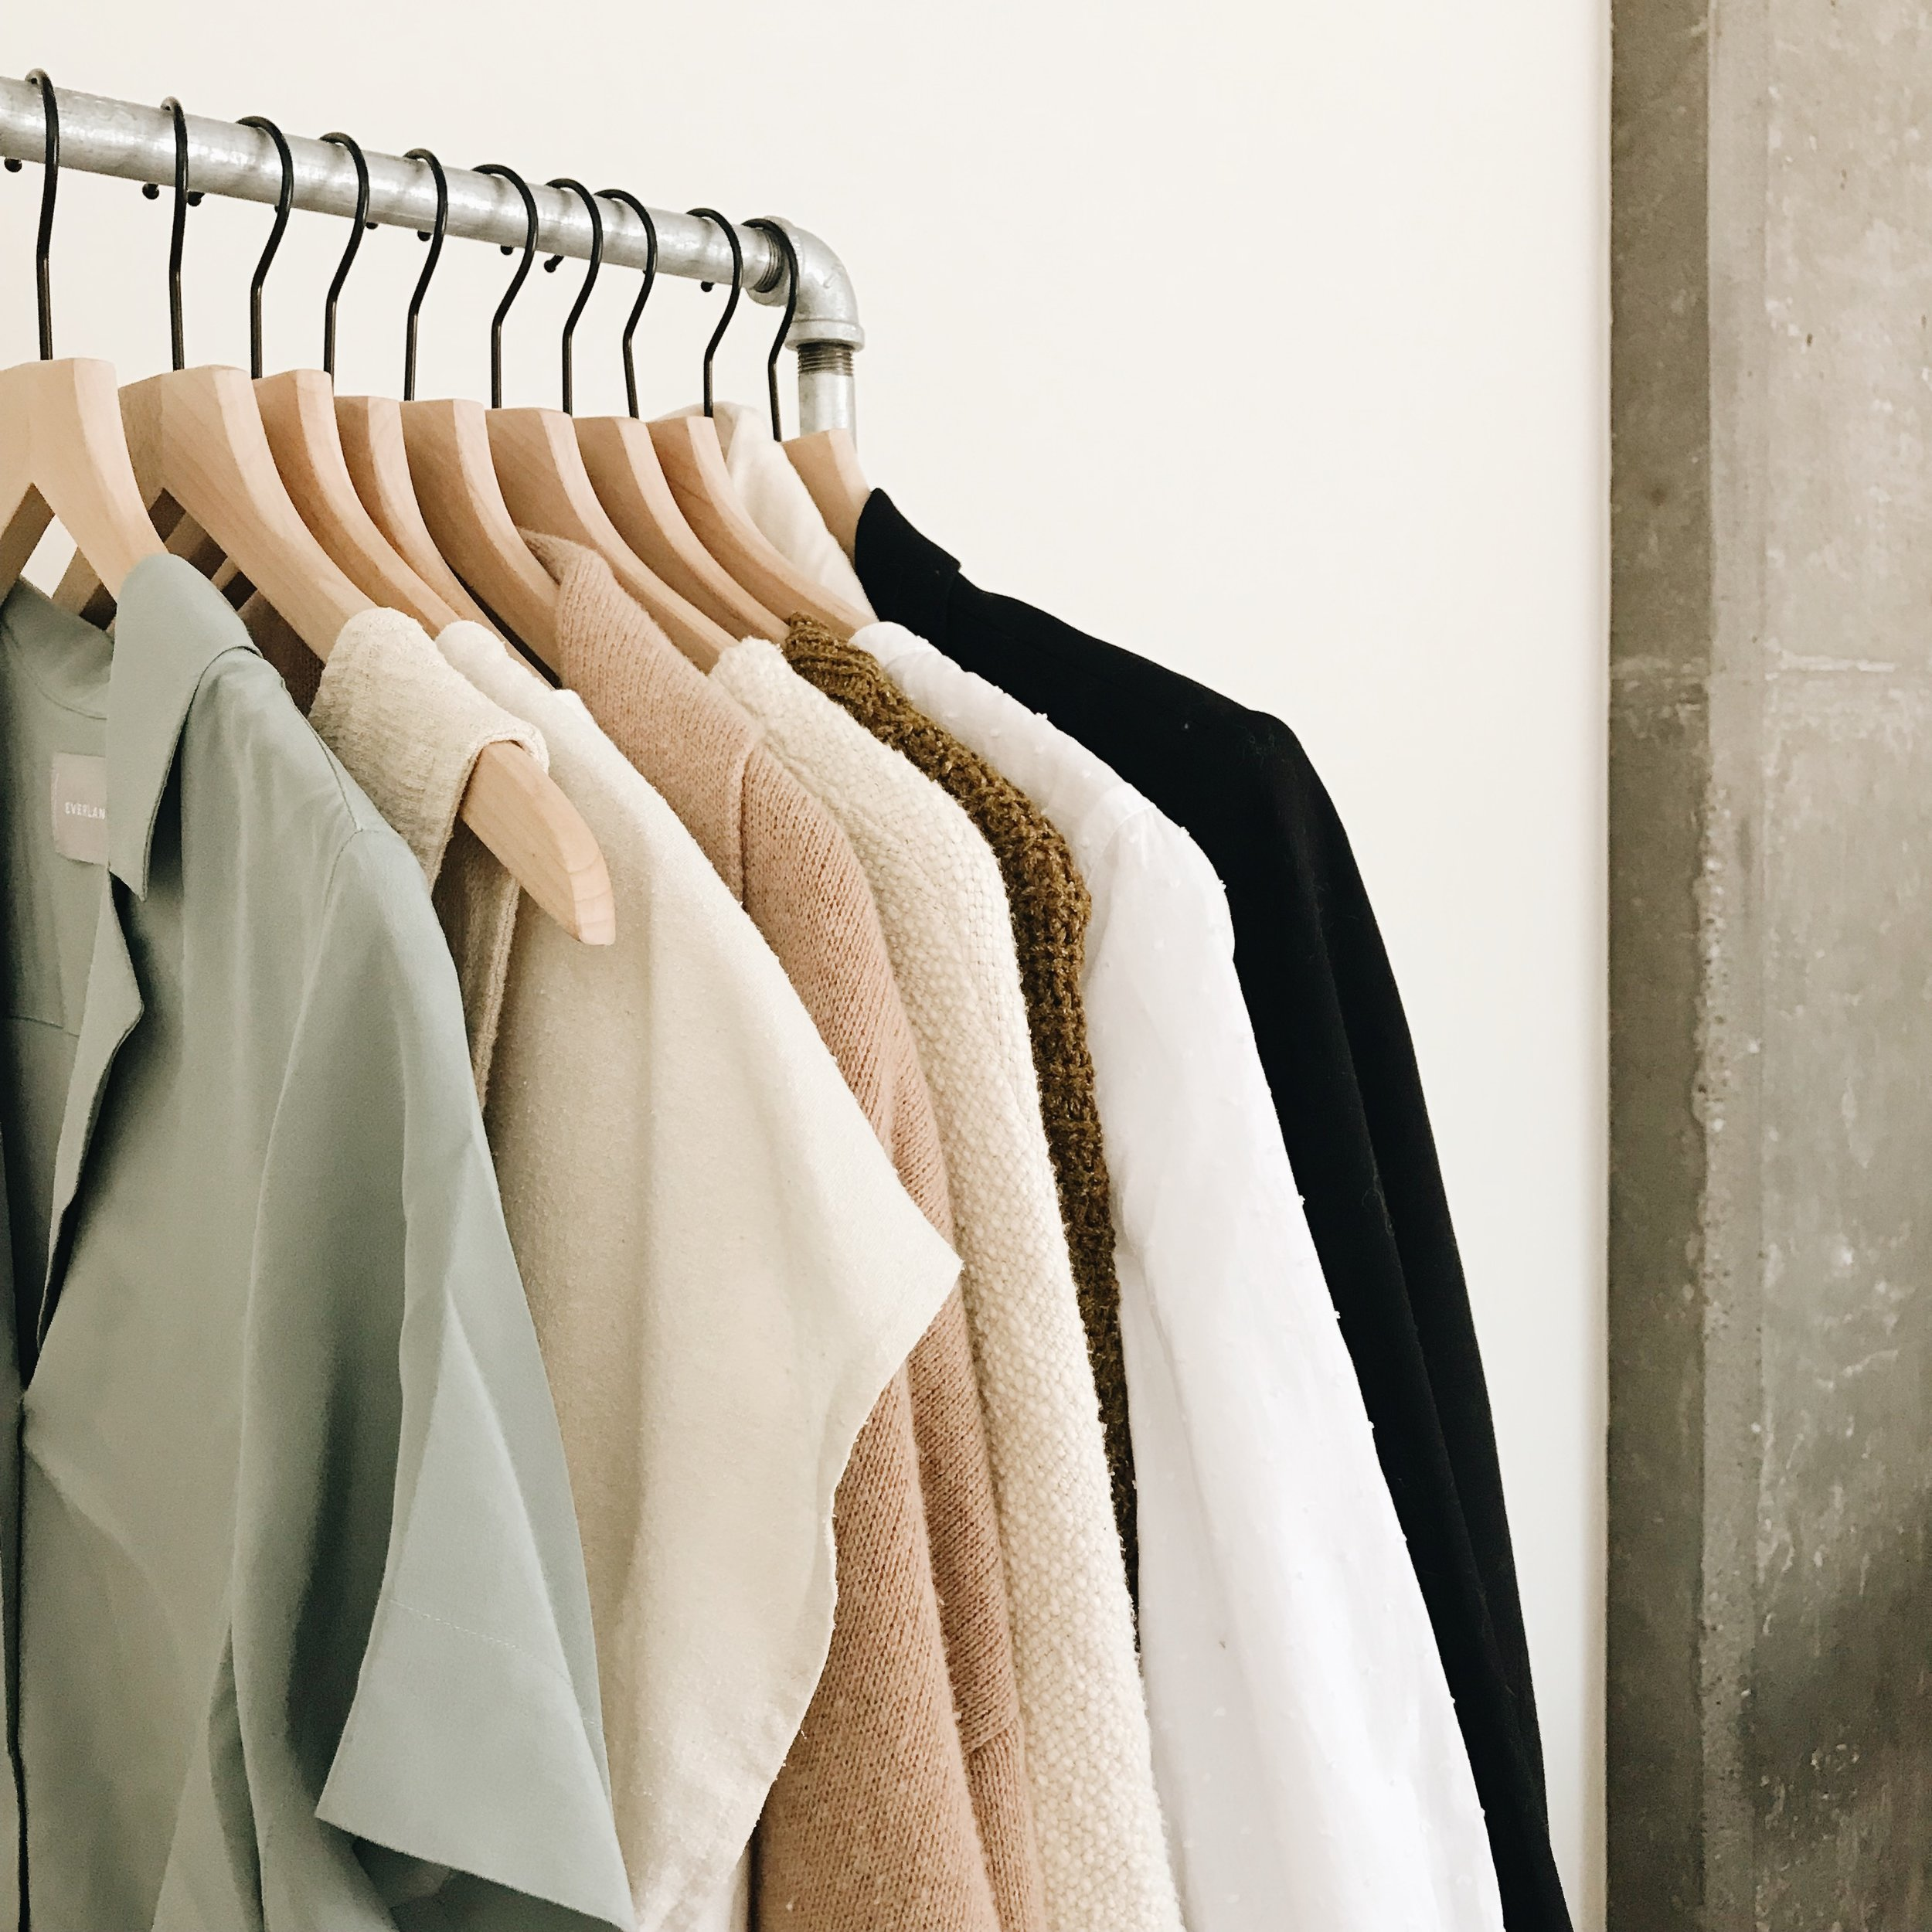 the-thoughtful-closet_spring-capsule-2018_spring-10x10.jpg